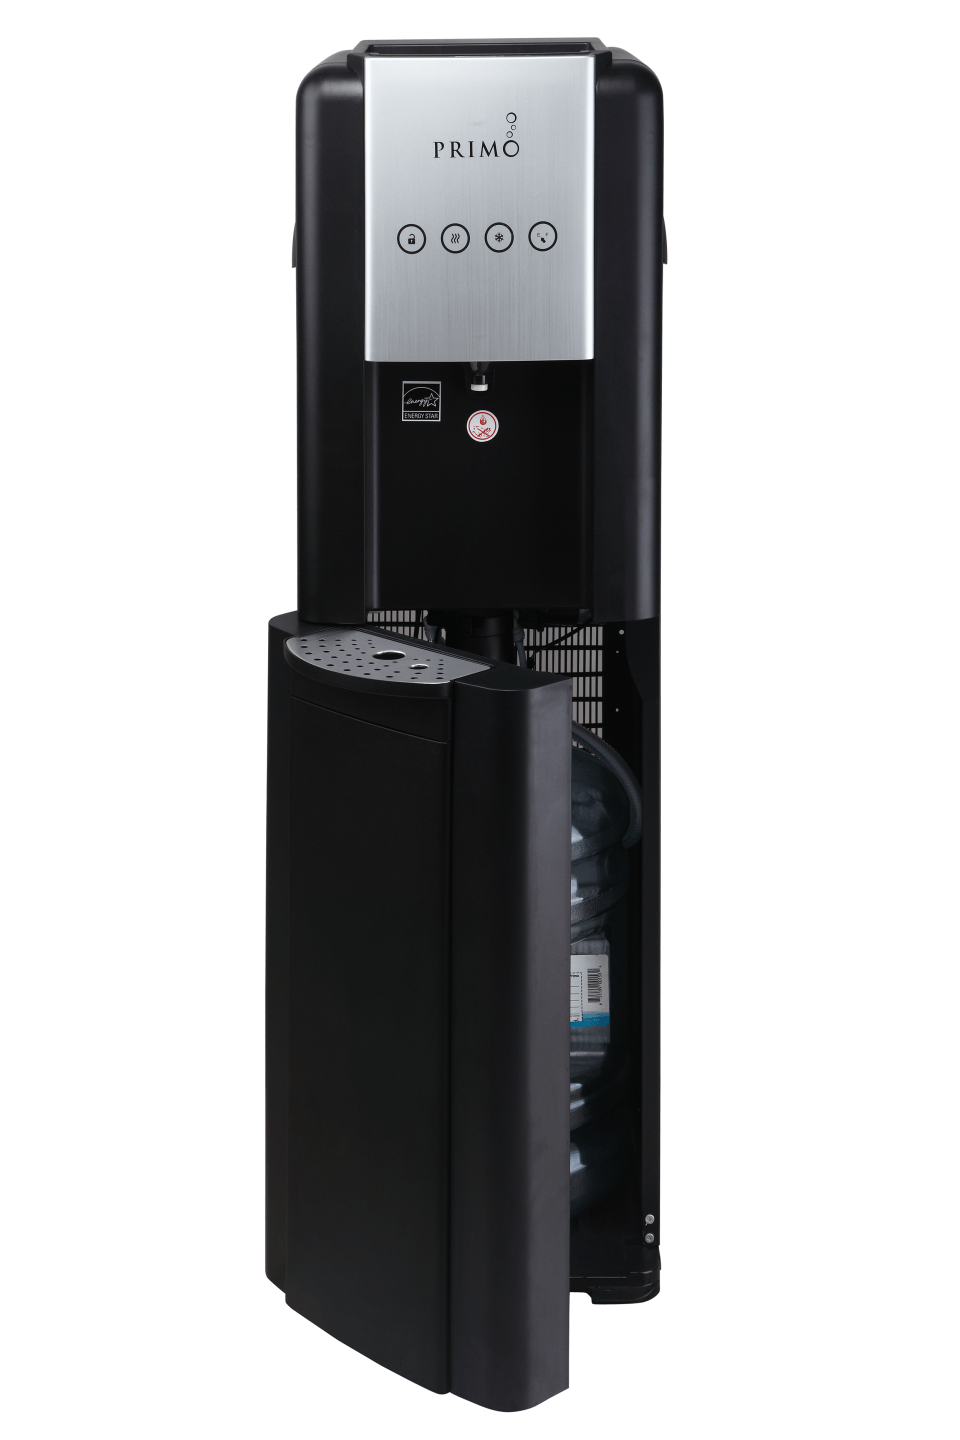 Water Dispenser Black Friday : water, dispenser, black, friday, Primo, Bottom, Loading, Hot/Cold, Water, Dispenser,, Black, Walmart.com